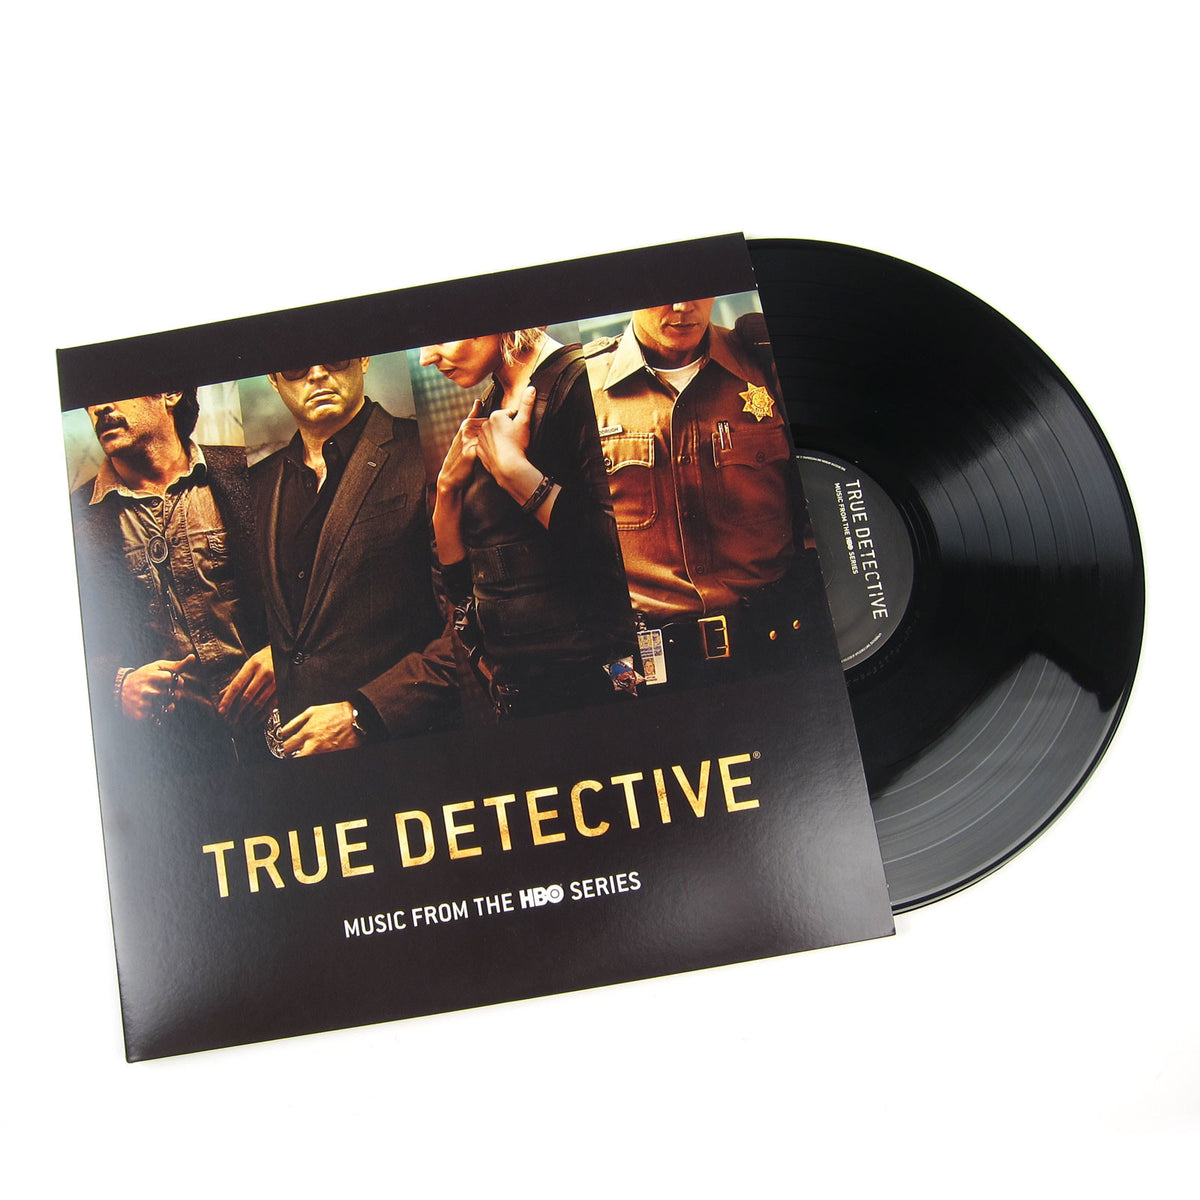 True Detective: Soundrack Vinyl 2LP (Record Store Day)